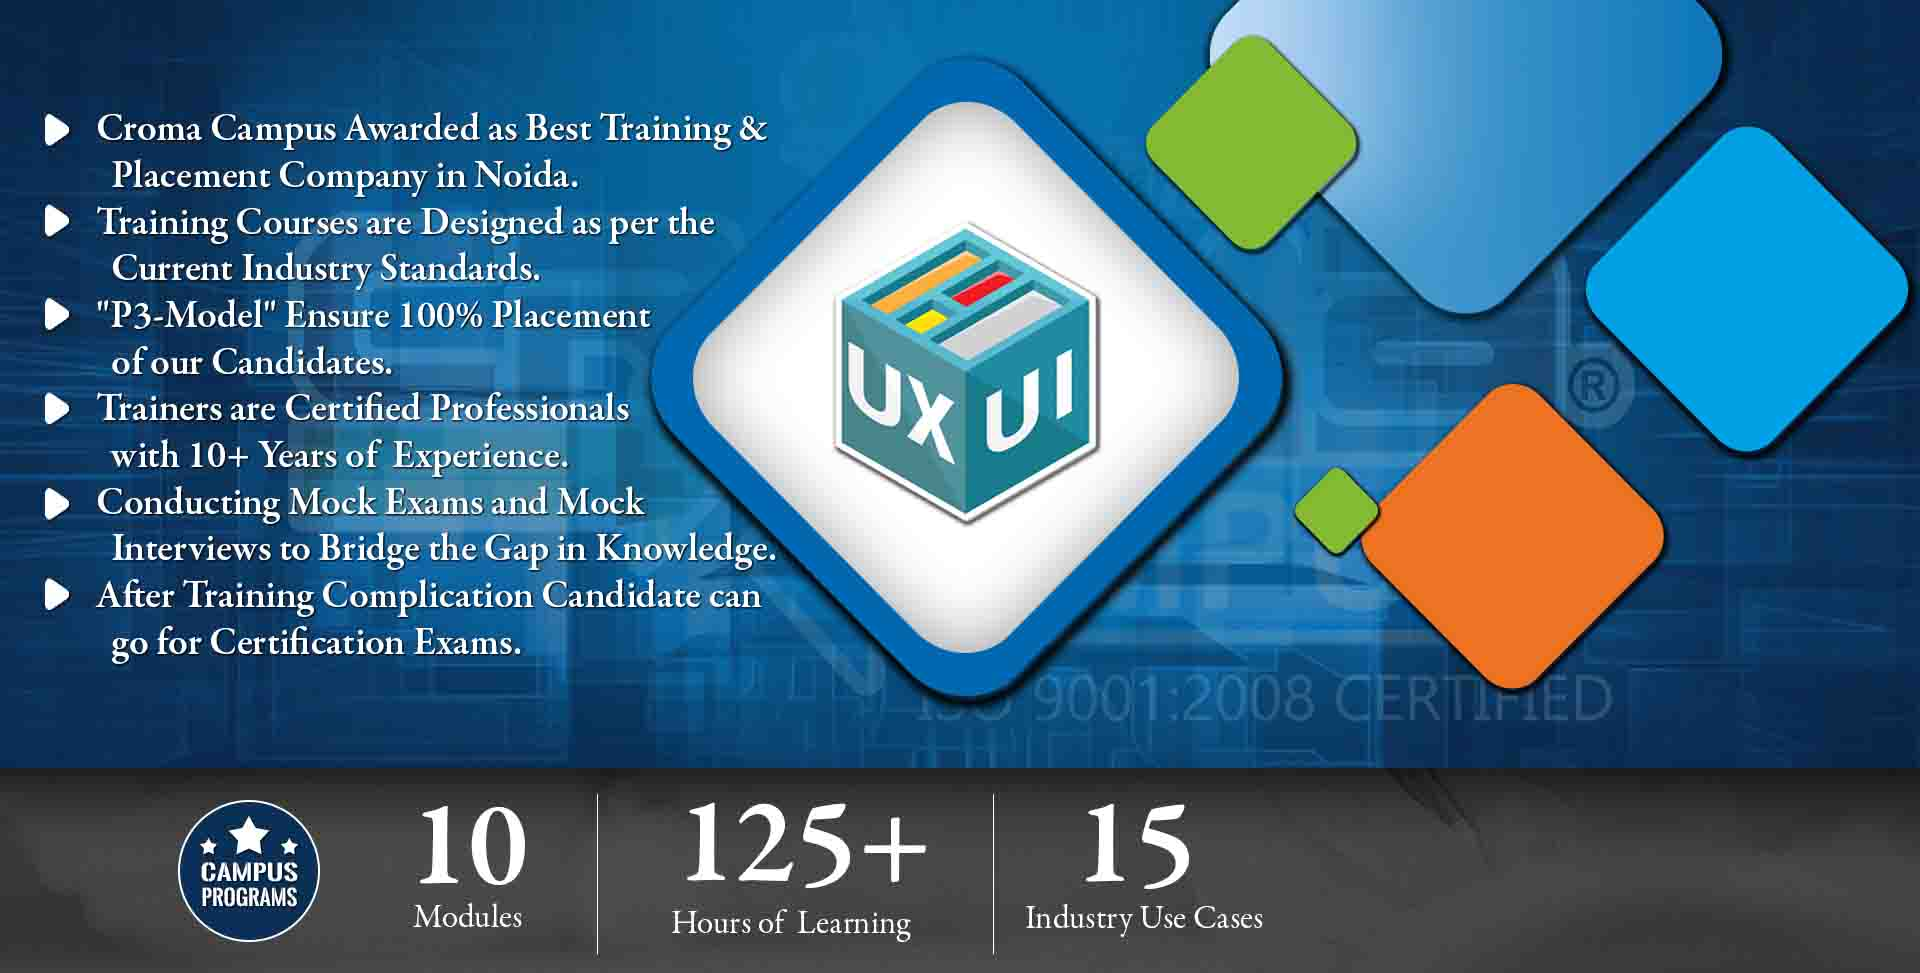 UI/UX Training in Noida- Croma Campus